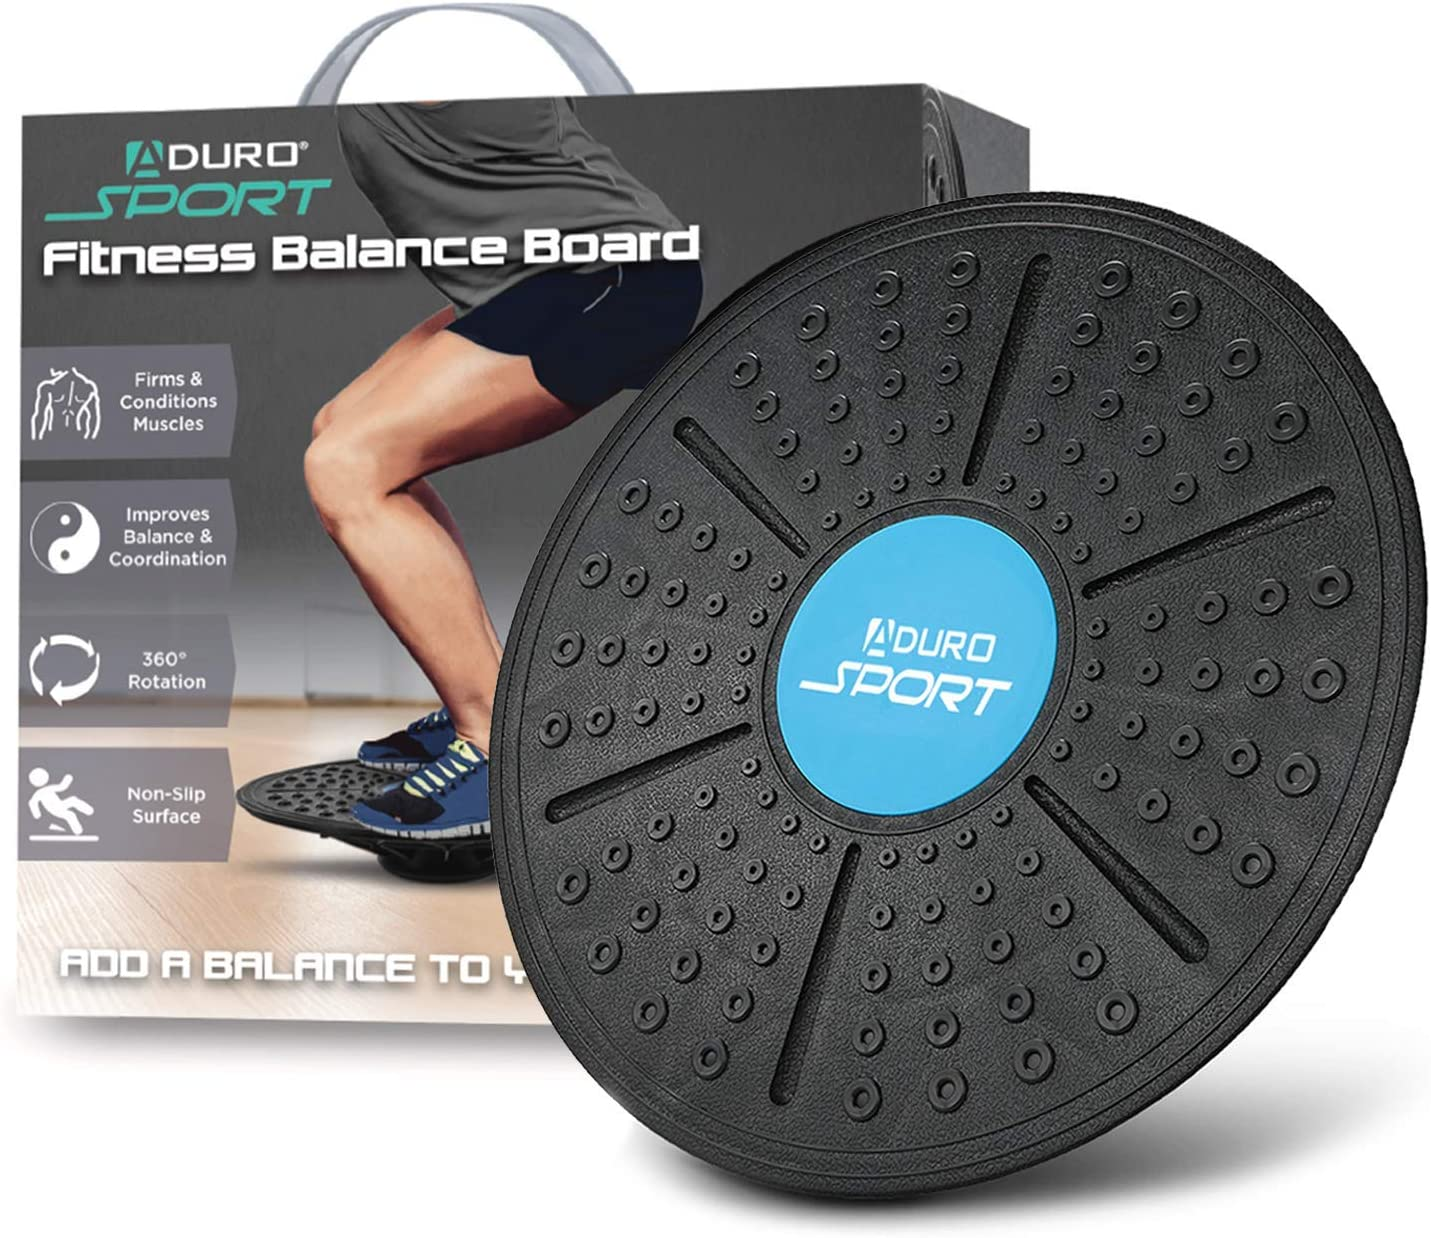 Aduro Sport 14 Balance Board Wobble Fitness Fit Exercise Tilt Stability Balancer Balancing Rocker Board Trainer Abs Legs Core Workout Non-Slip Safety Surface